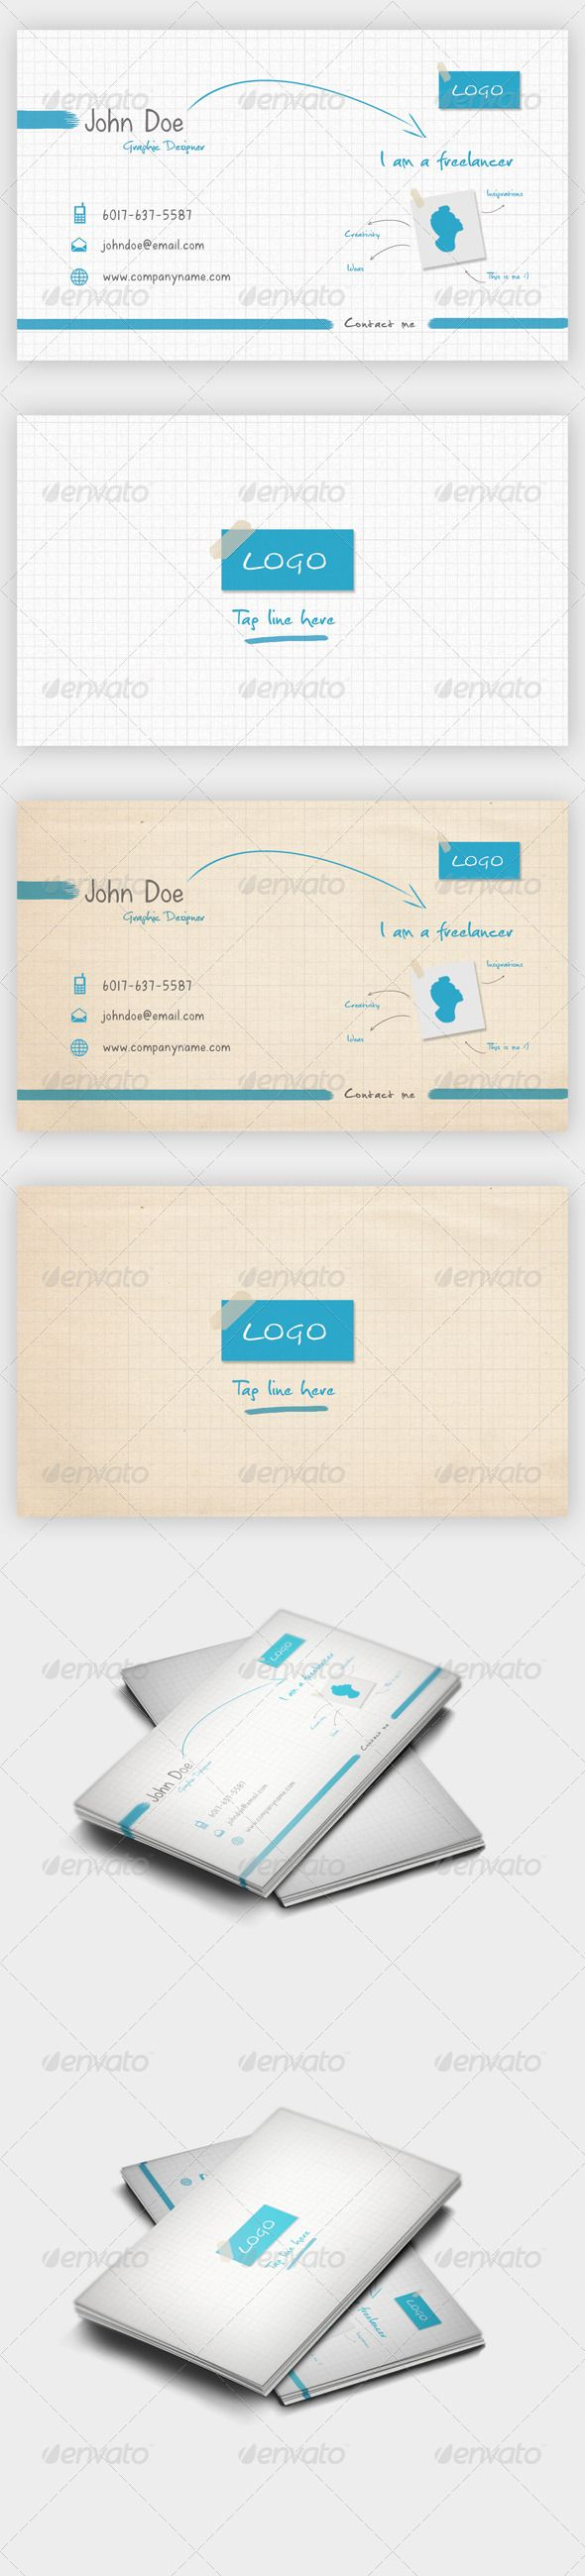 99 best print templates images on pinterest print templates im freelancer business card reheart Gallery